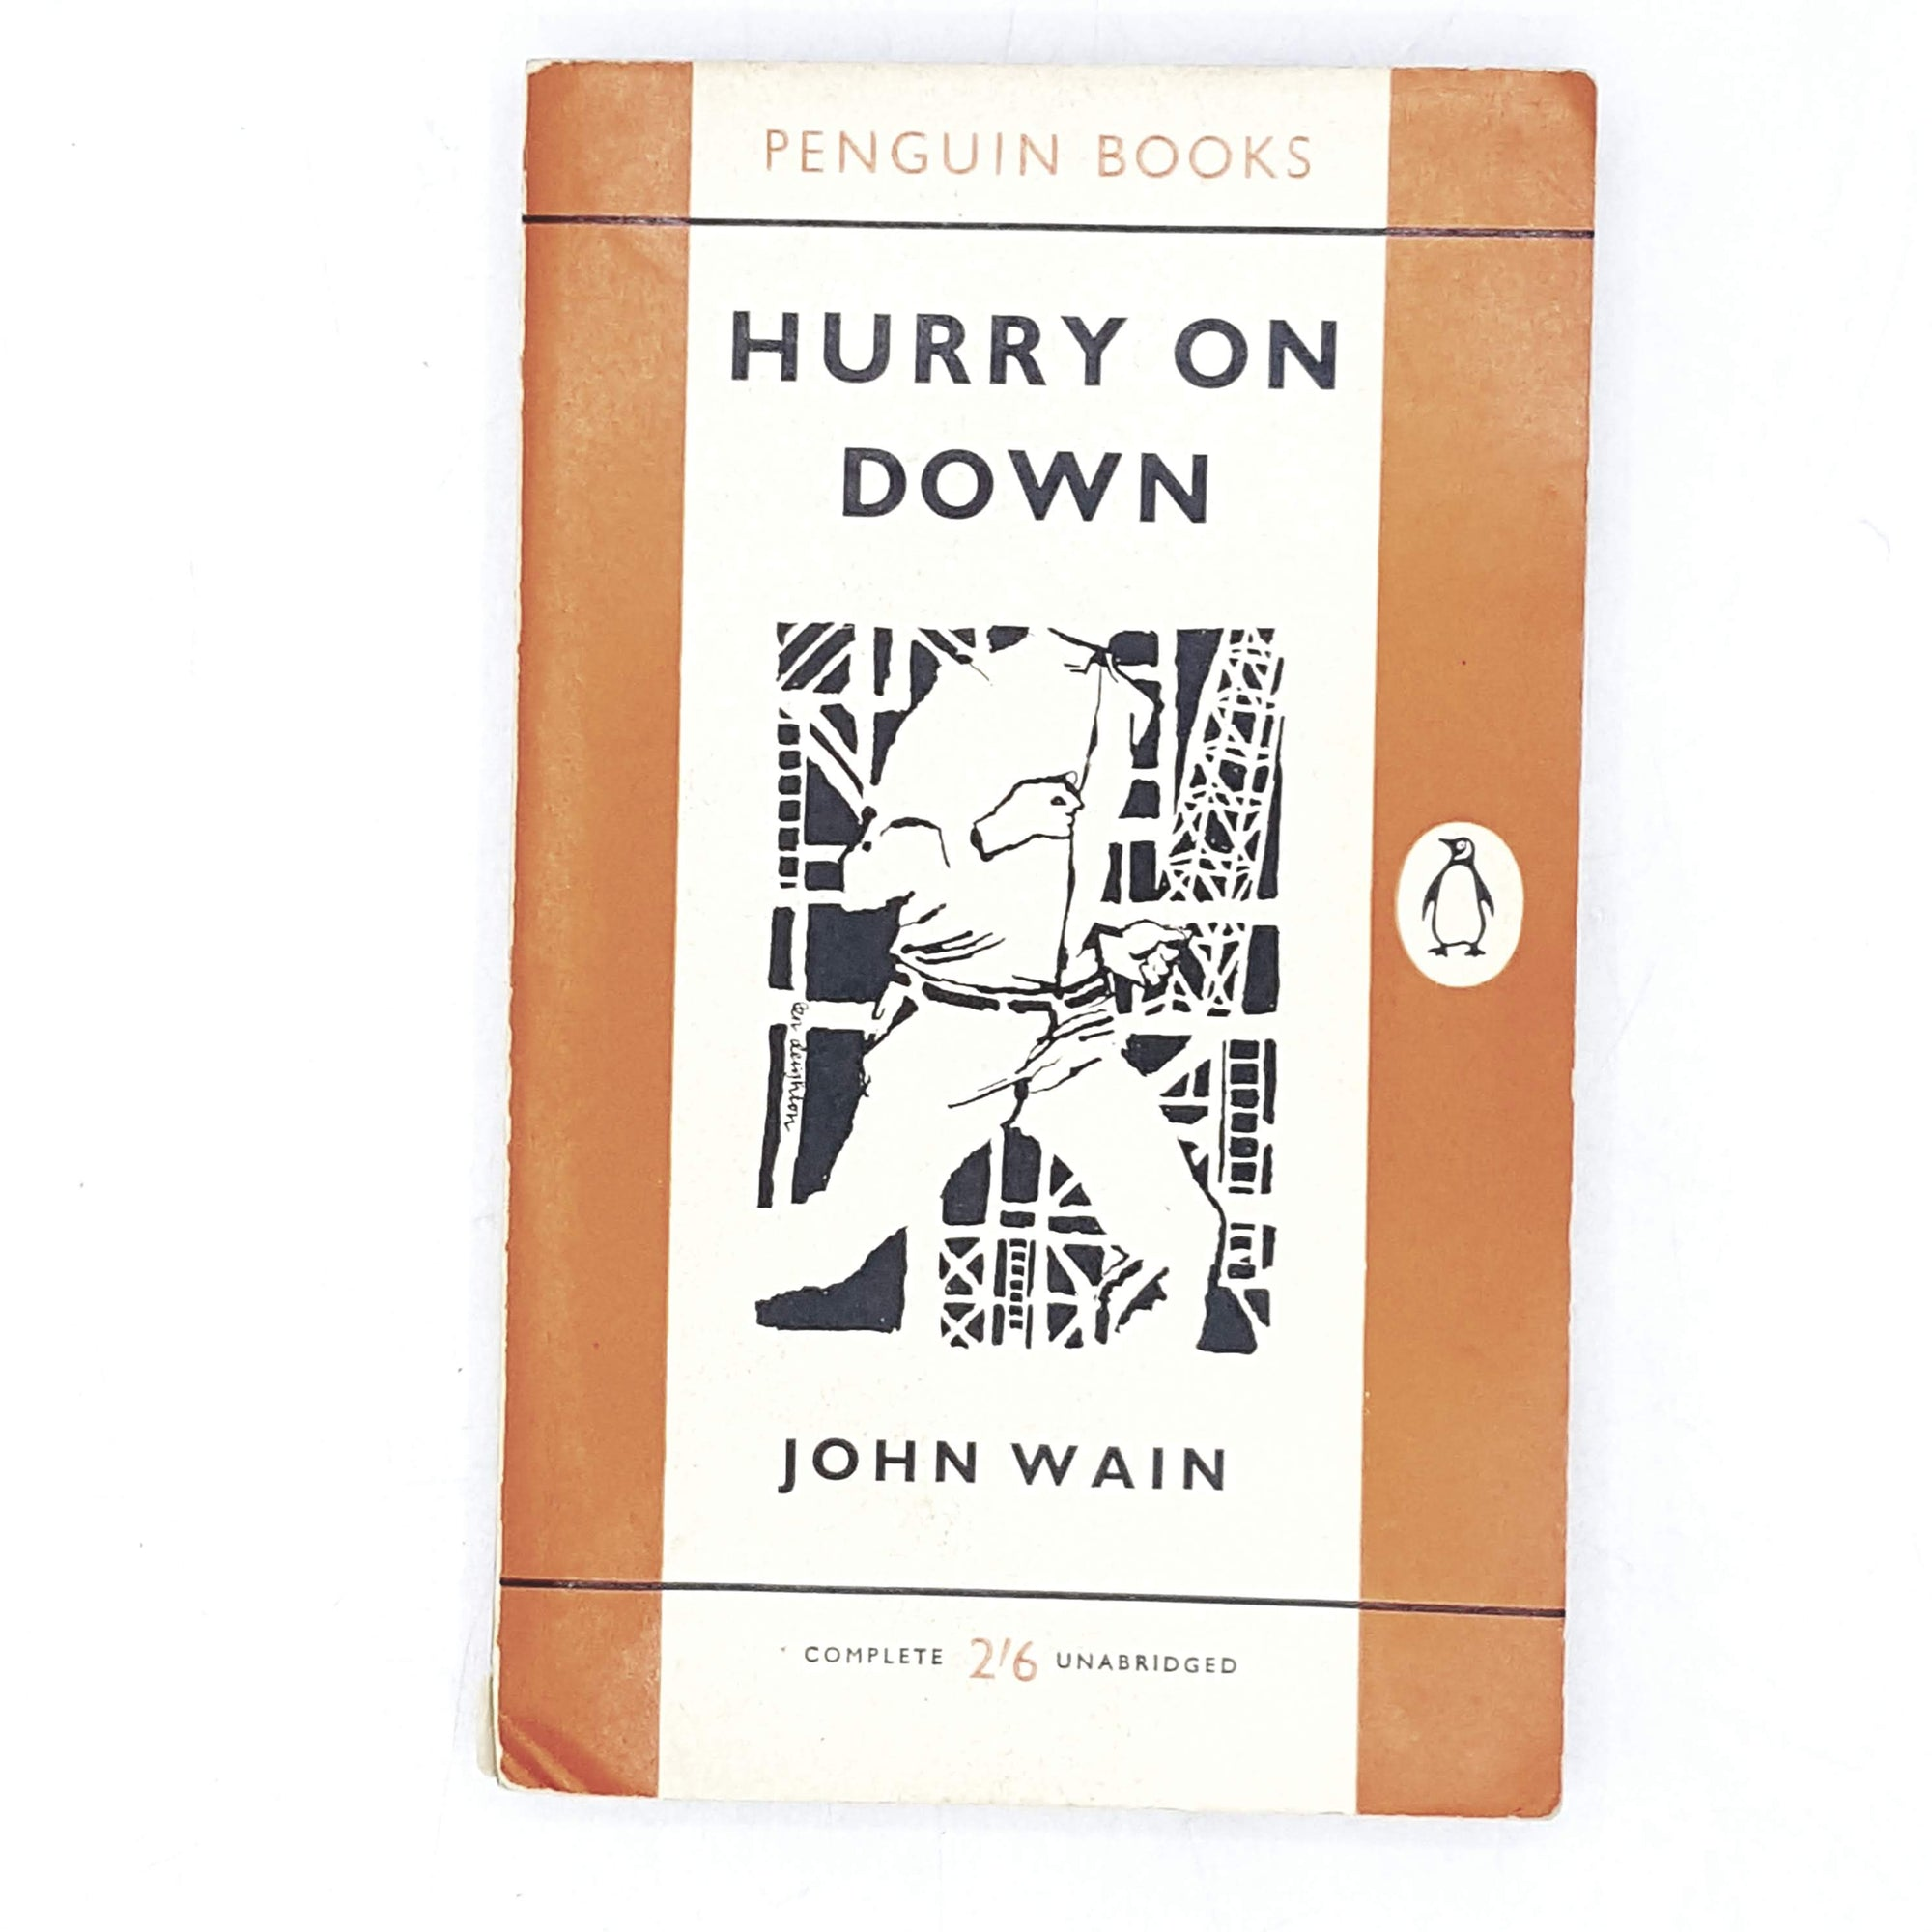 Vintage Penguin Hurry on Down by John Wain 1960